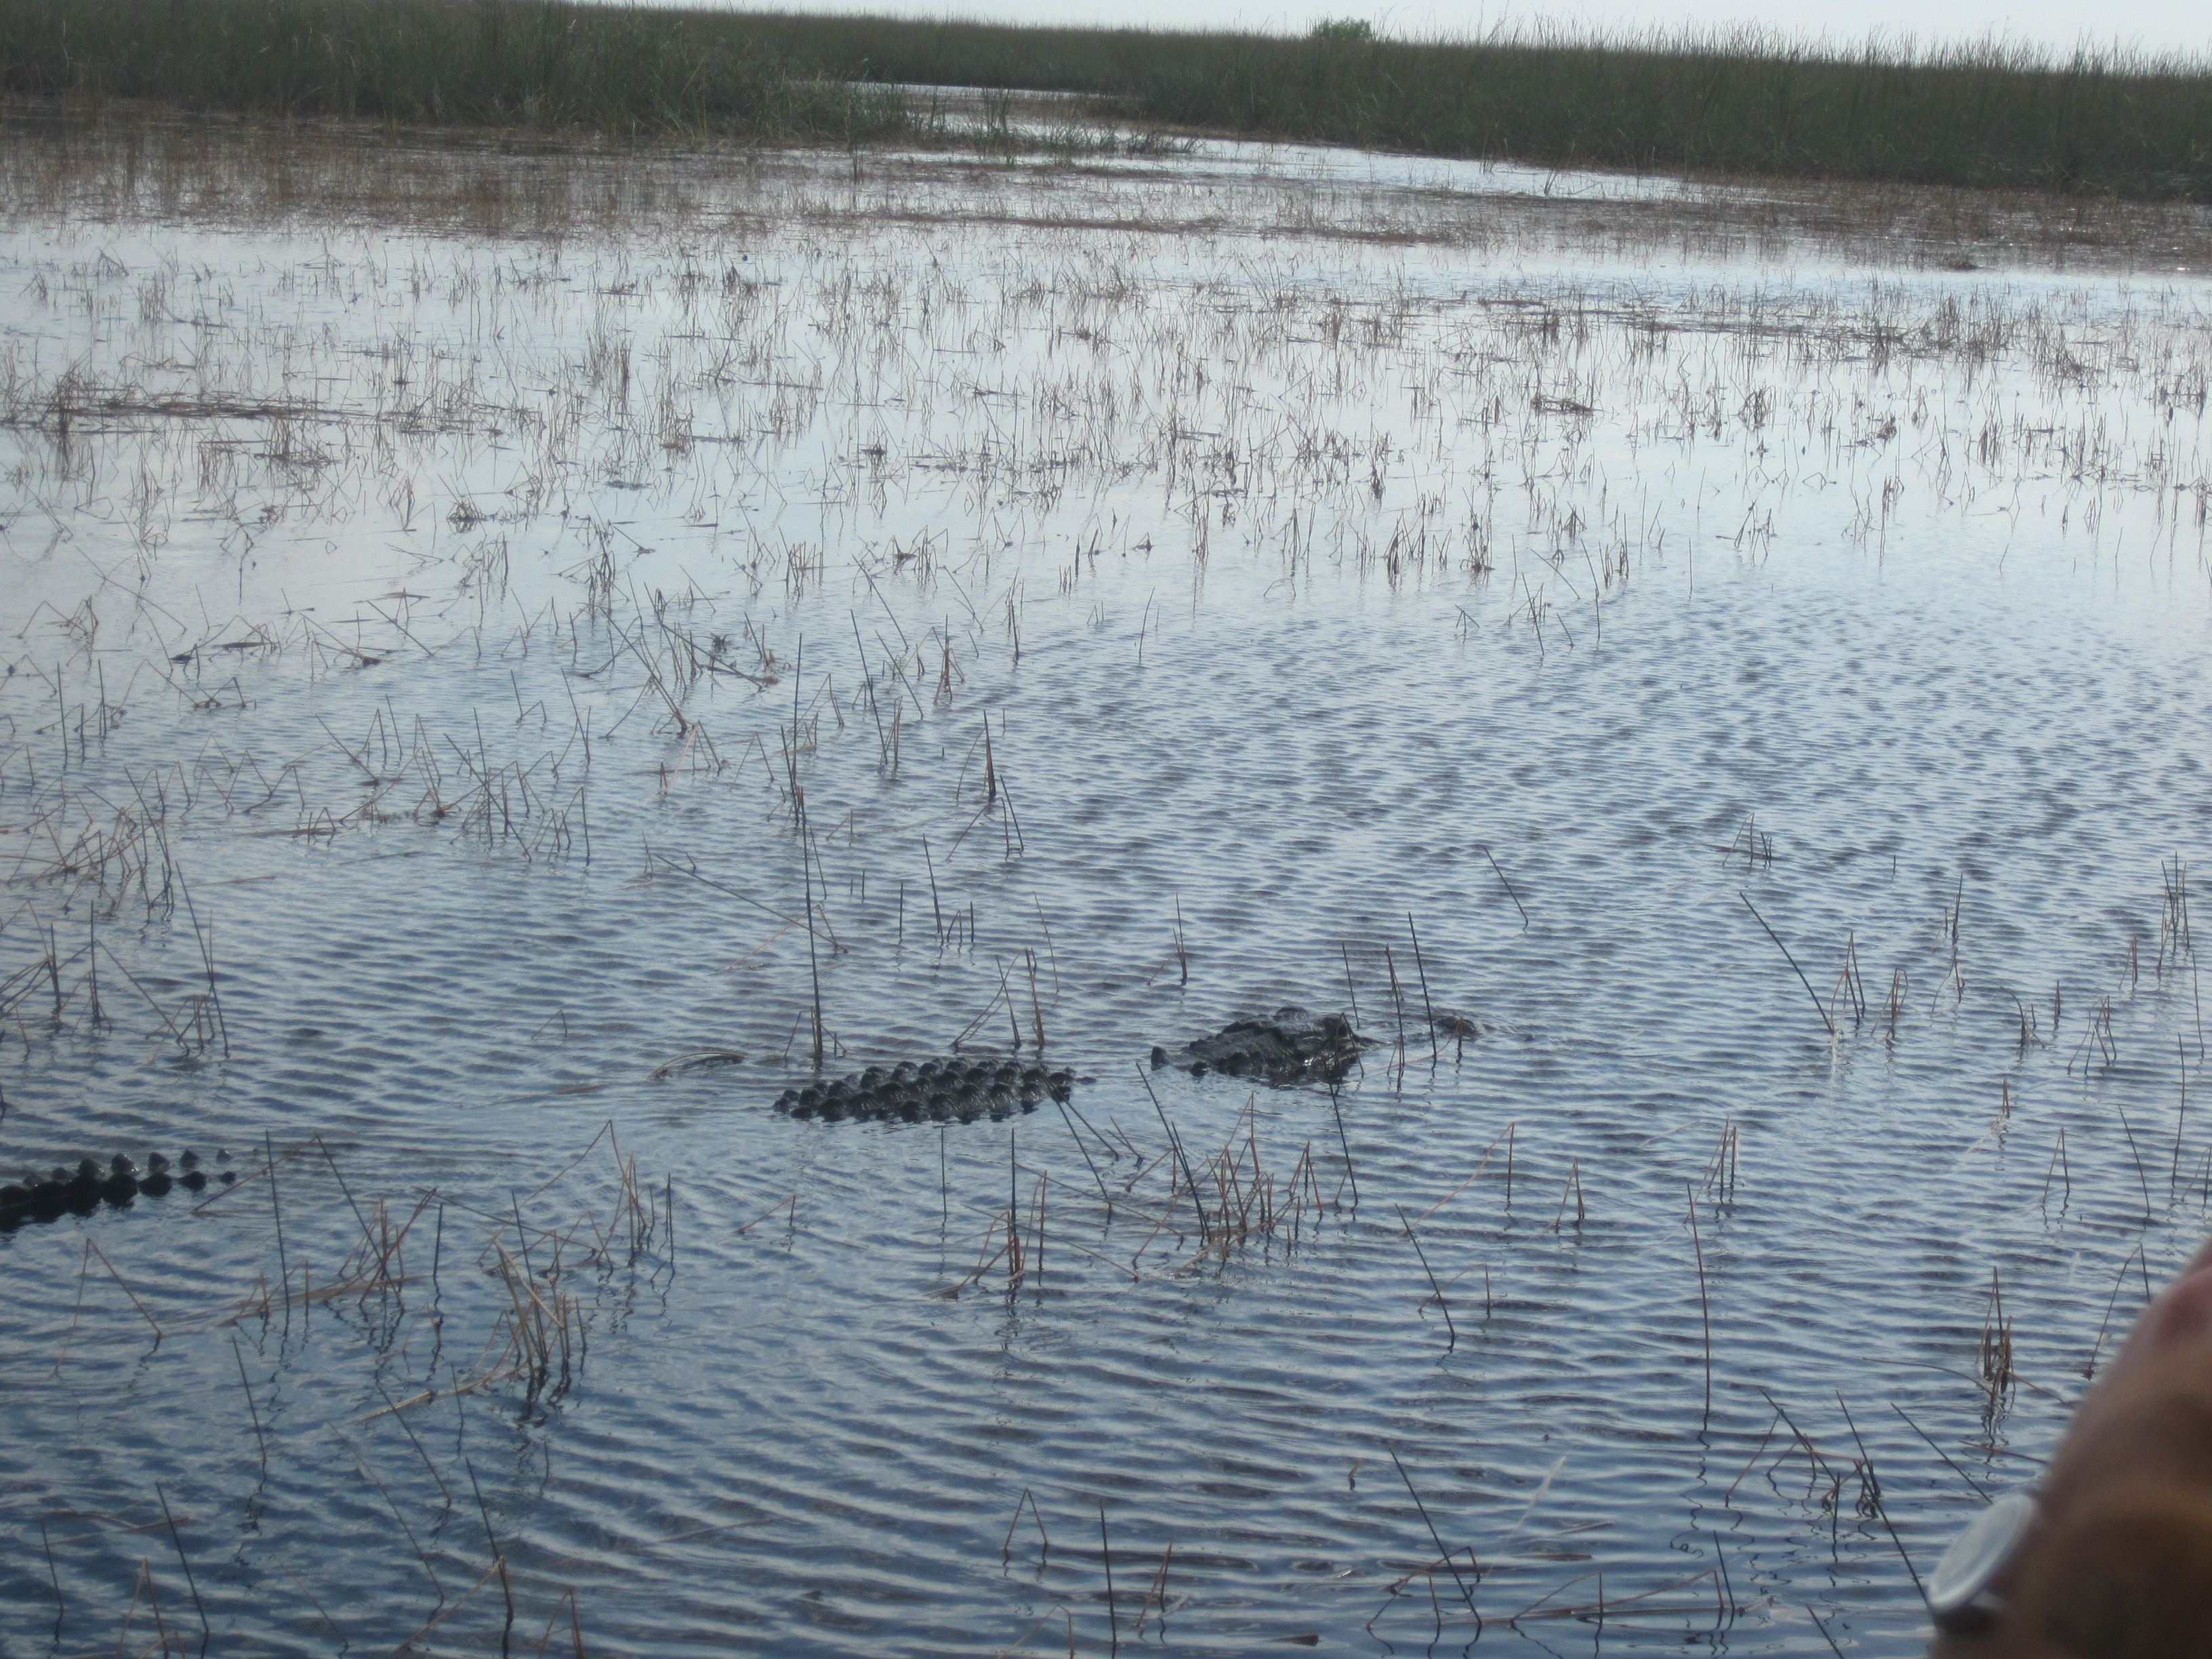 Gator in the wild.